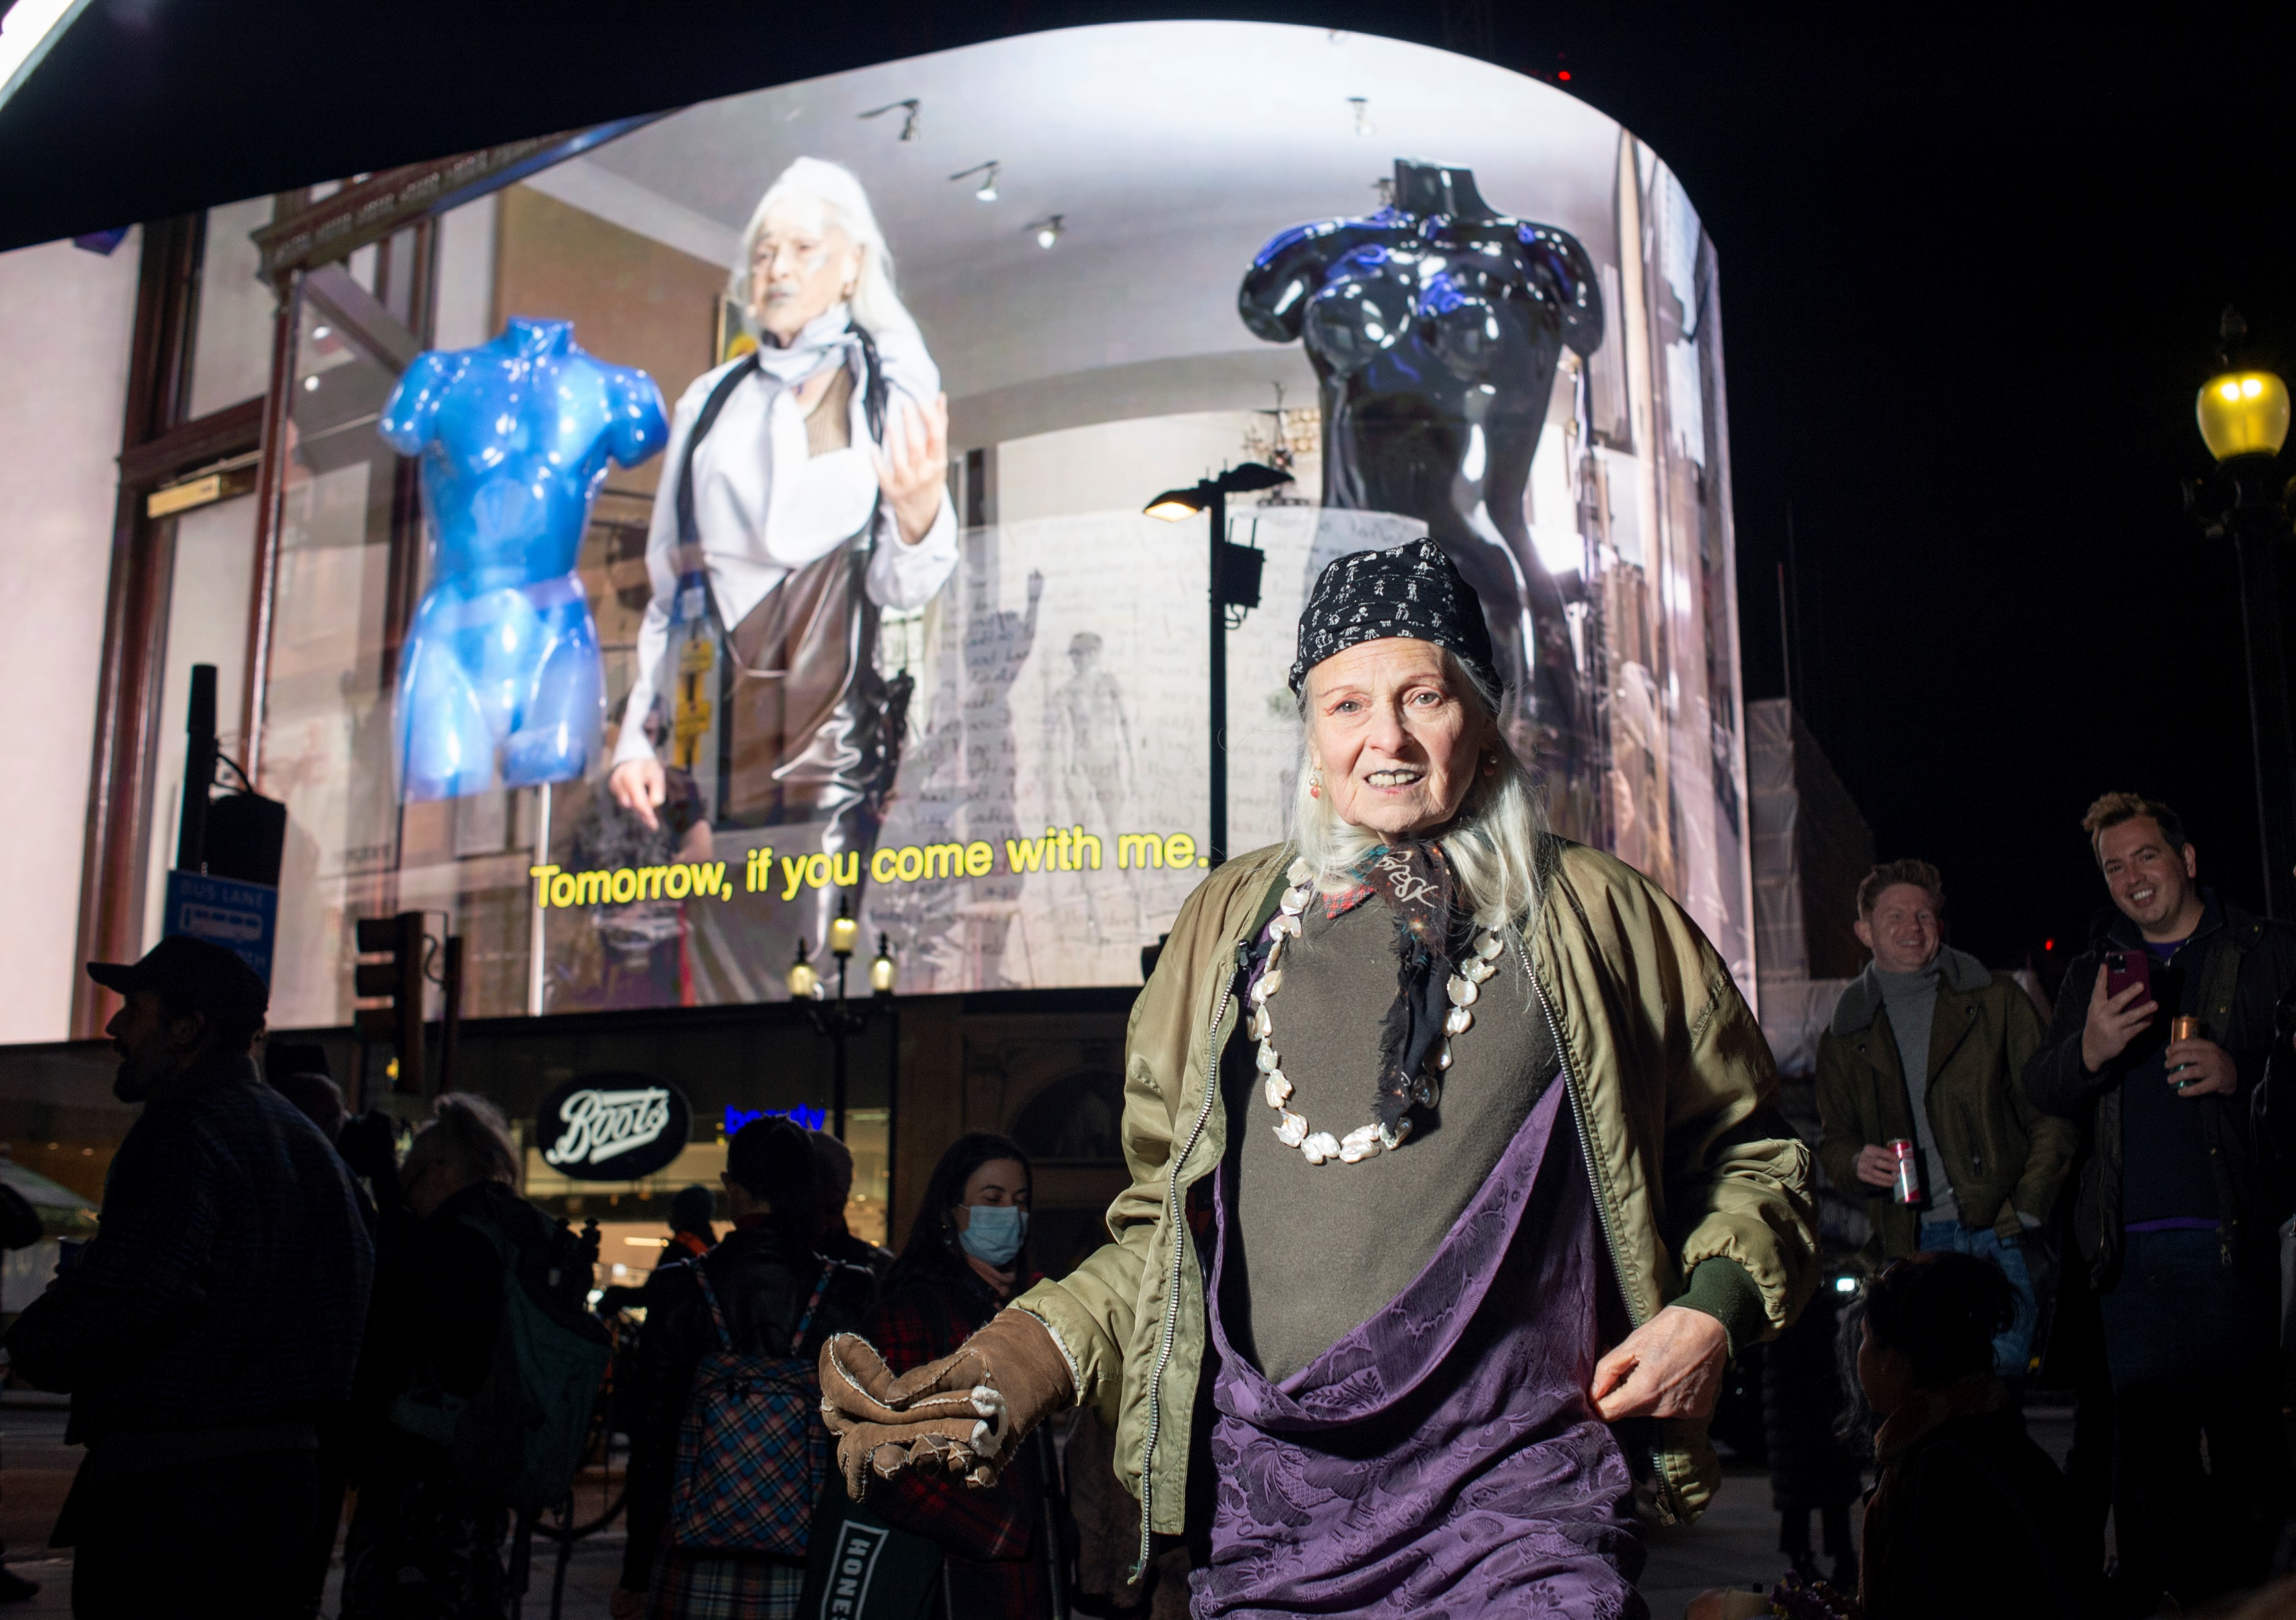 Vivienne Westwood stood in front of the Piccadilly Circus lights on her 80th birthday. Behind her, a video of her performing a reading plays.